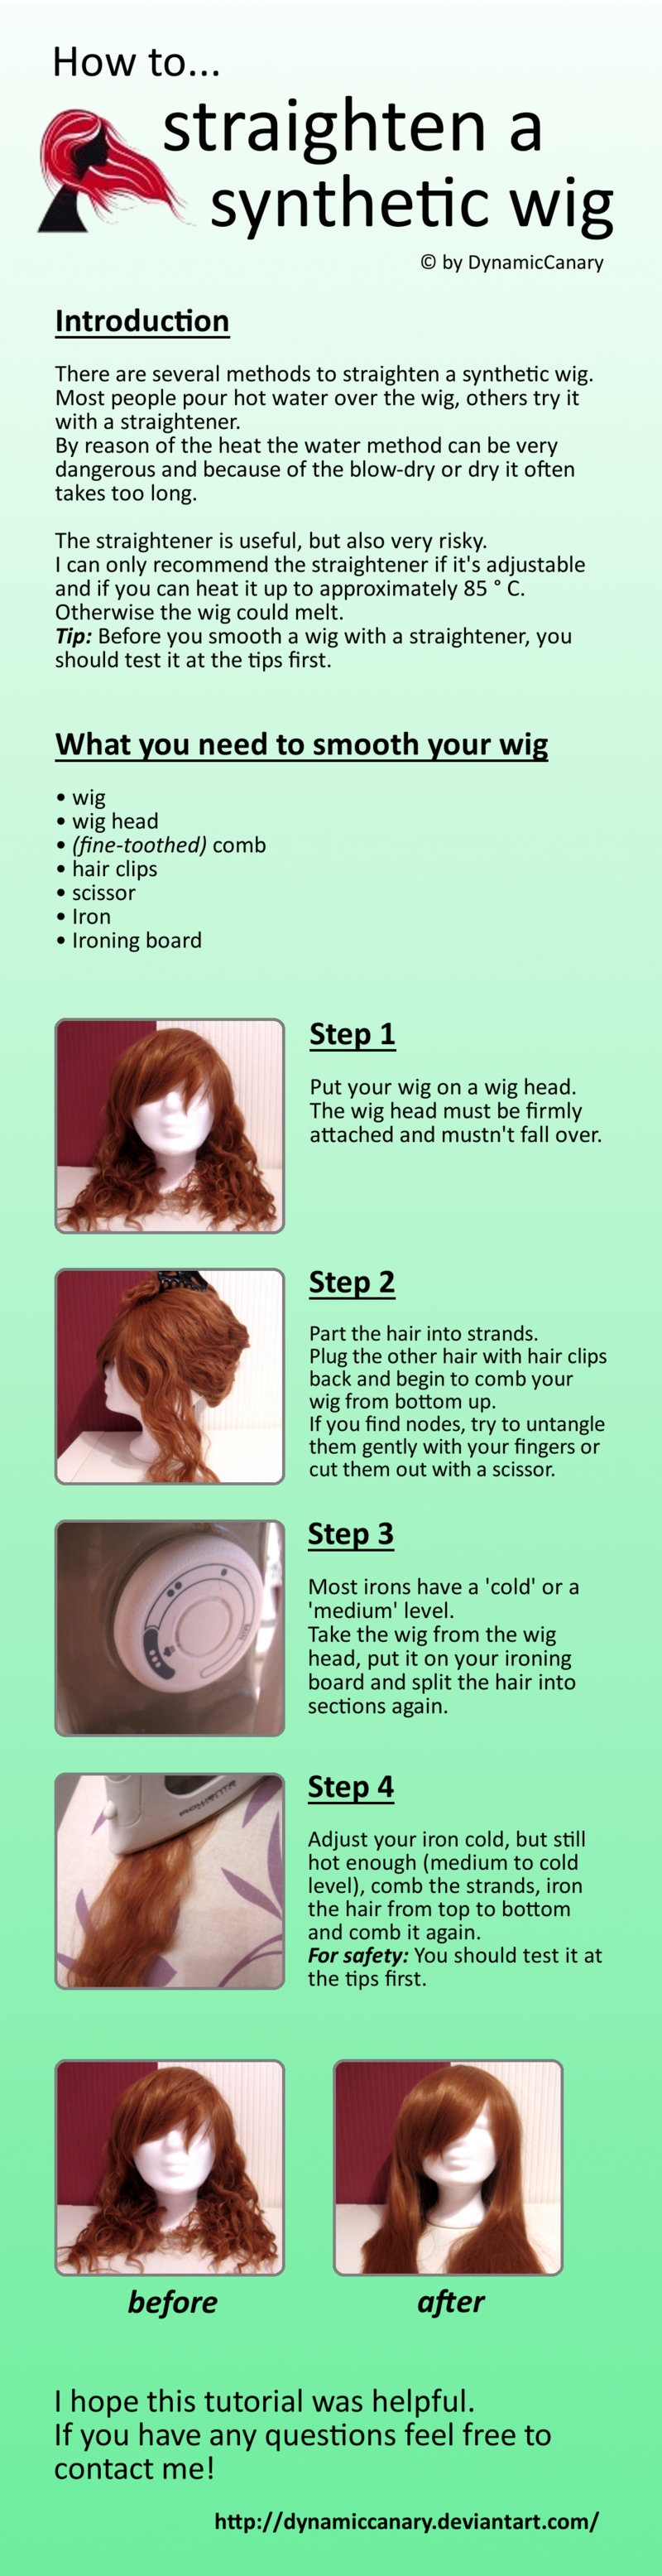 Tutorial How To Straighten A Synthetic Wig By Dynamiccanary On Deviantart Wigs Synthetic Wigs Wig Hairstyles